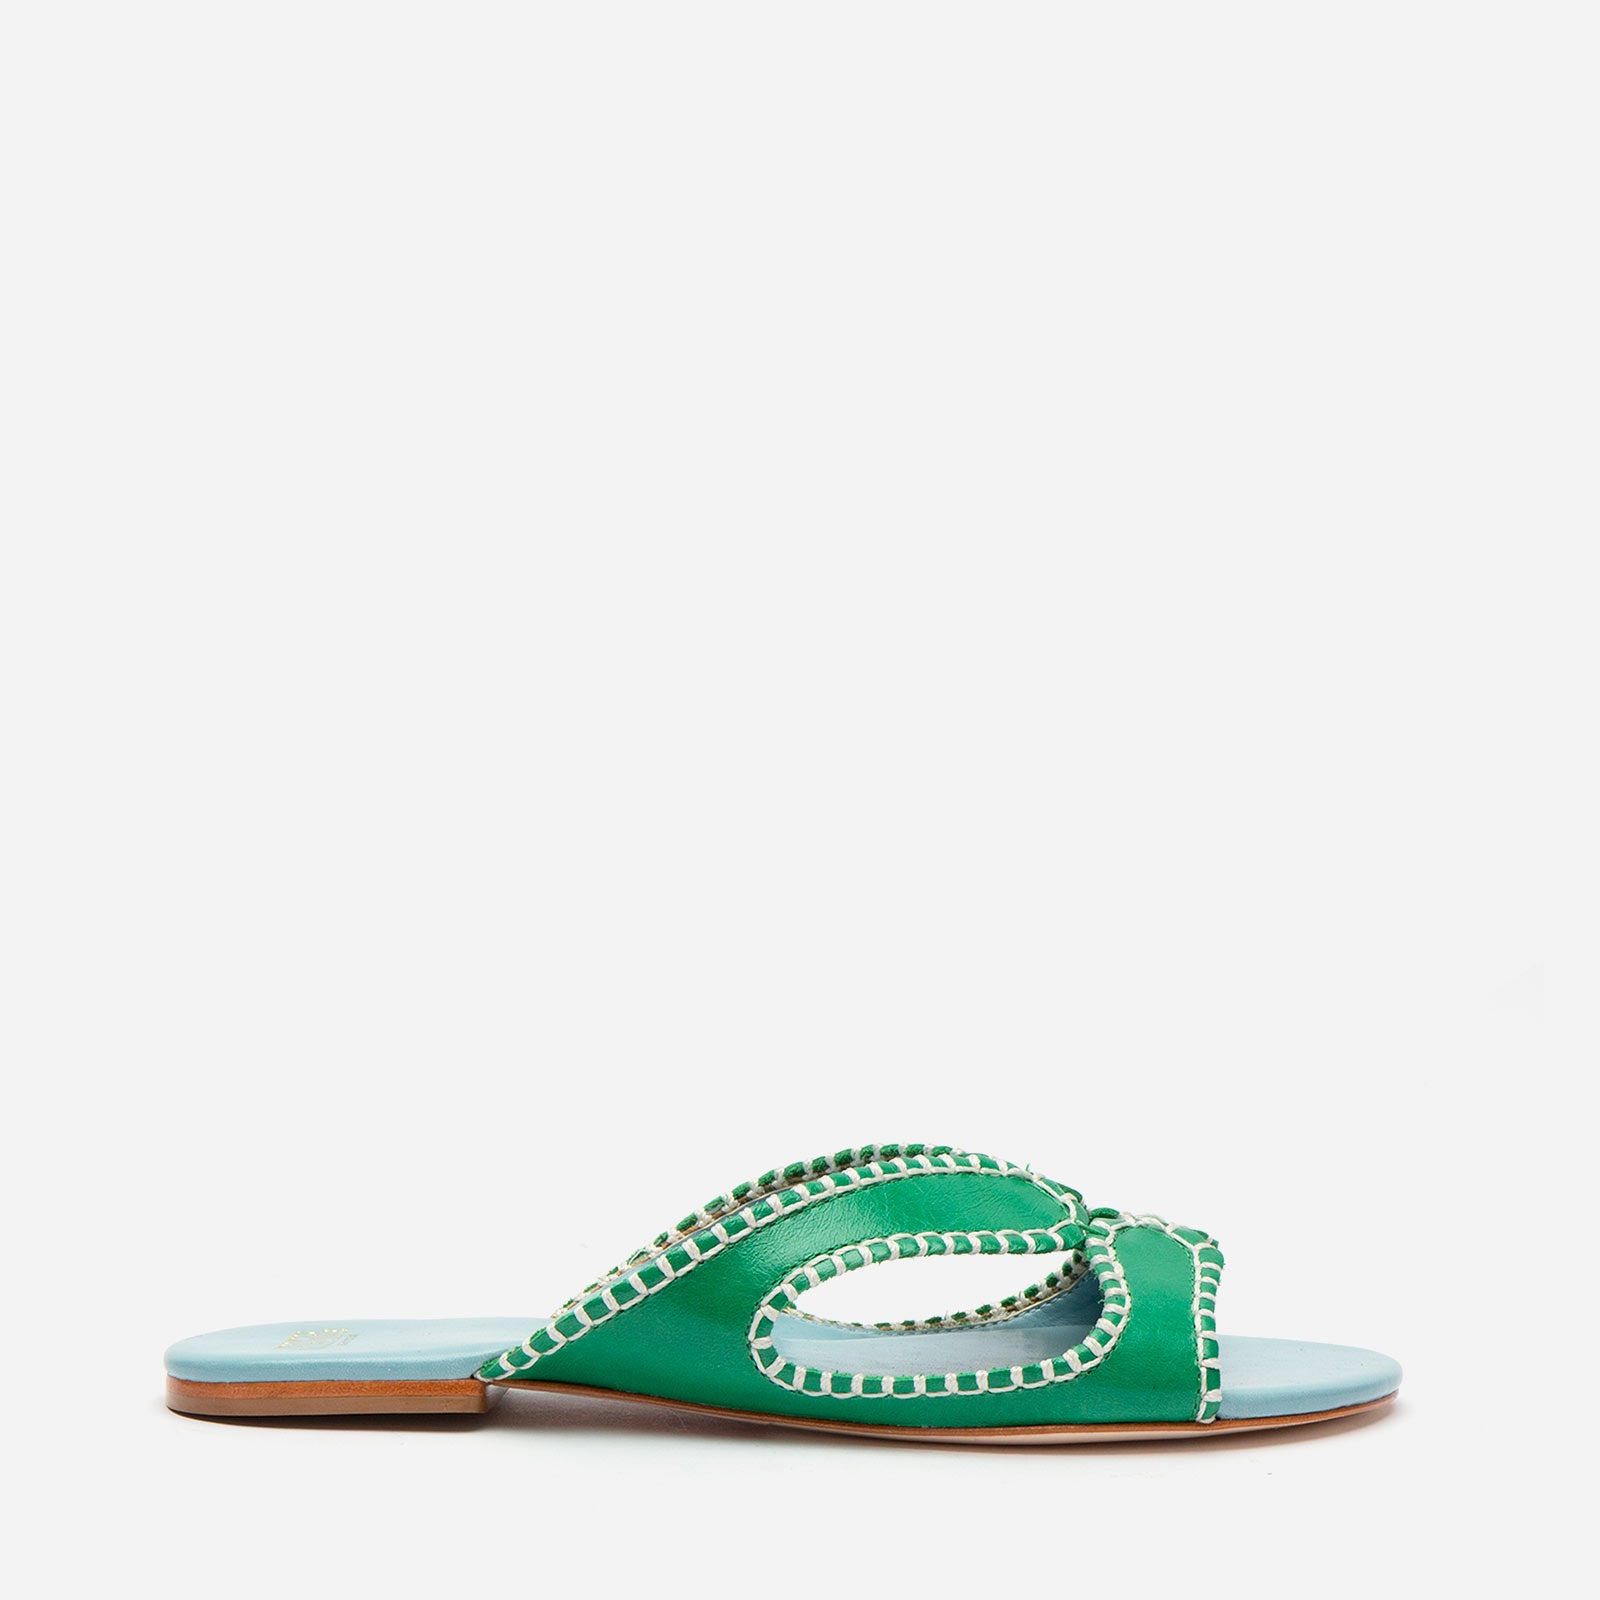 Meredith Blanket Stitch Sandal Green - Frances Valentine